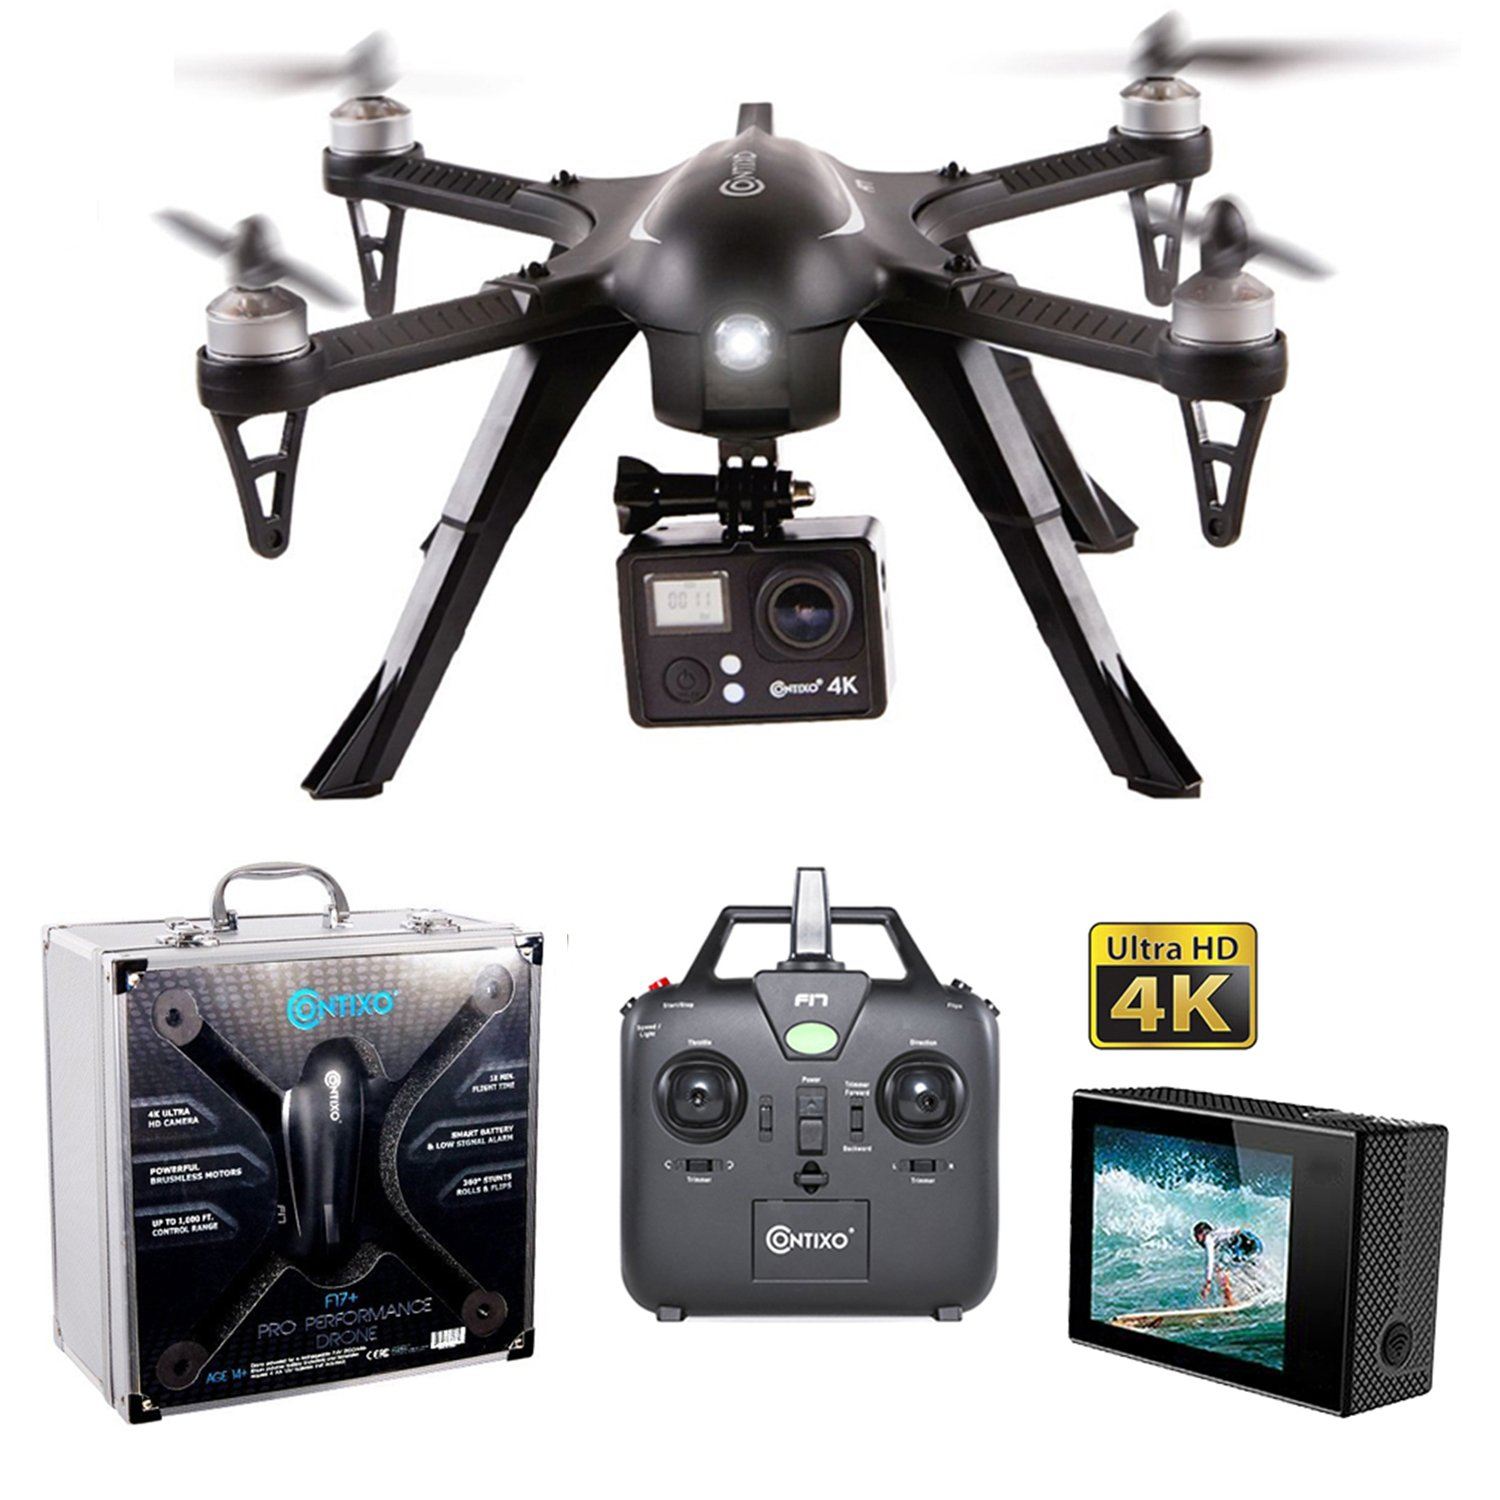 Contixo F17 Quadcopter Photography Brushless